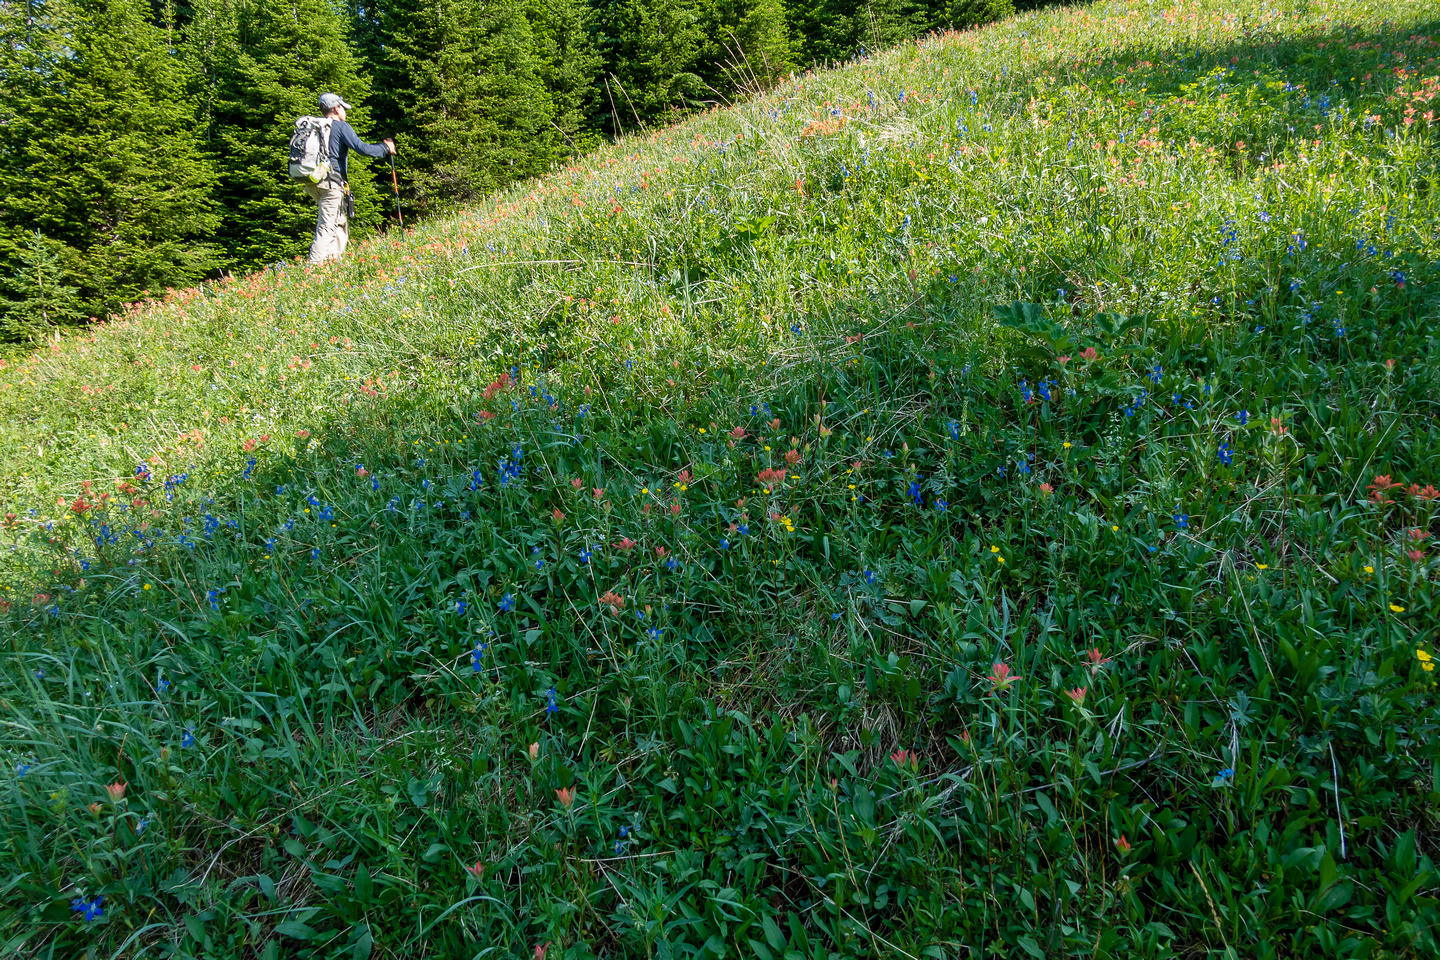 Hiking up a mix of forest, grasses and wildflowers.